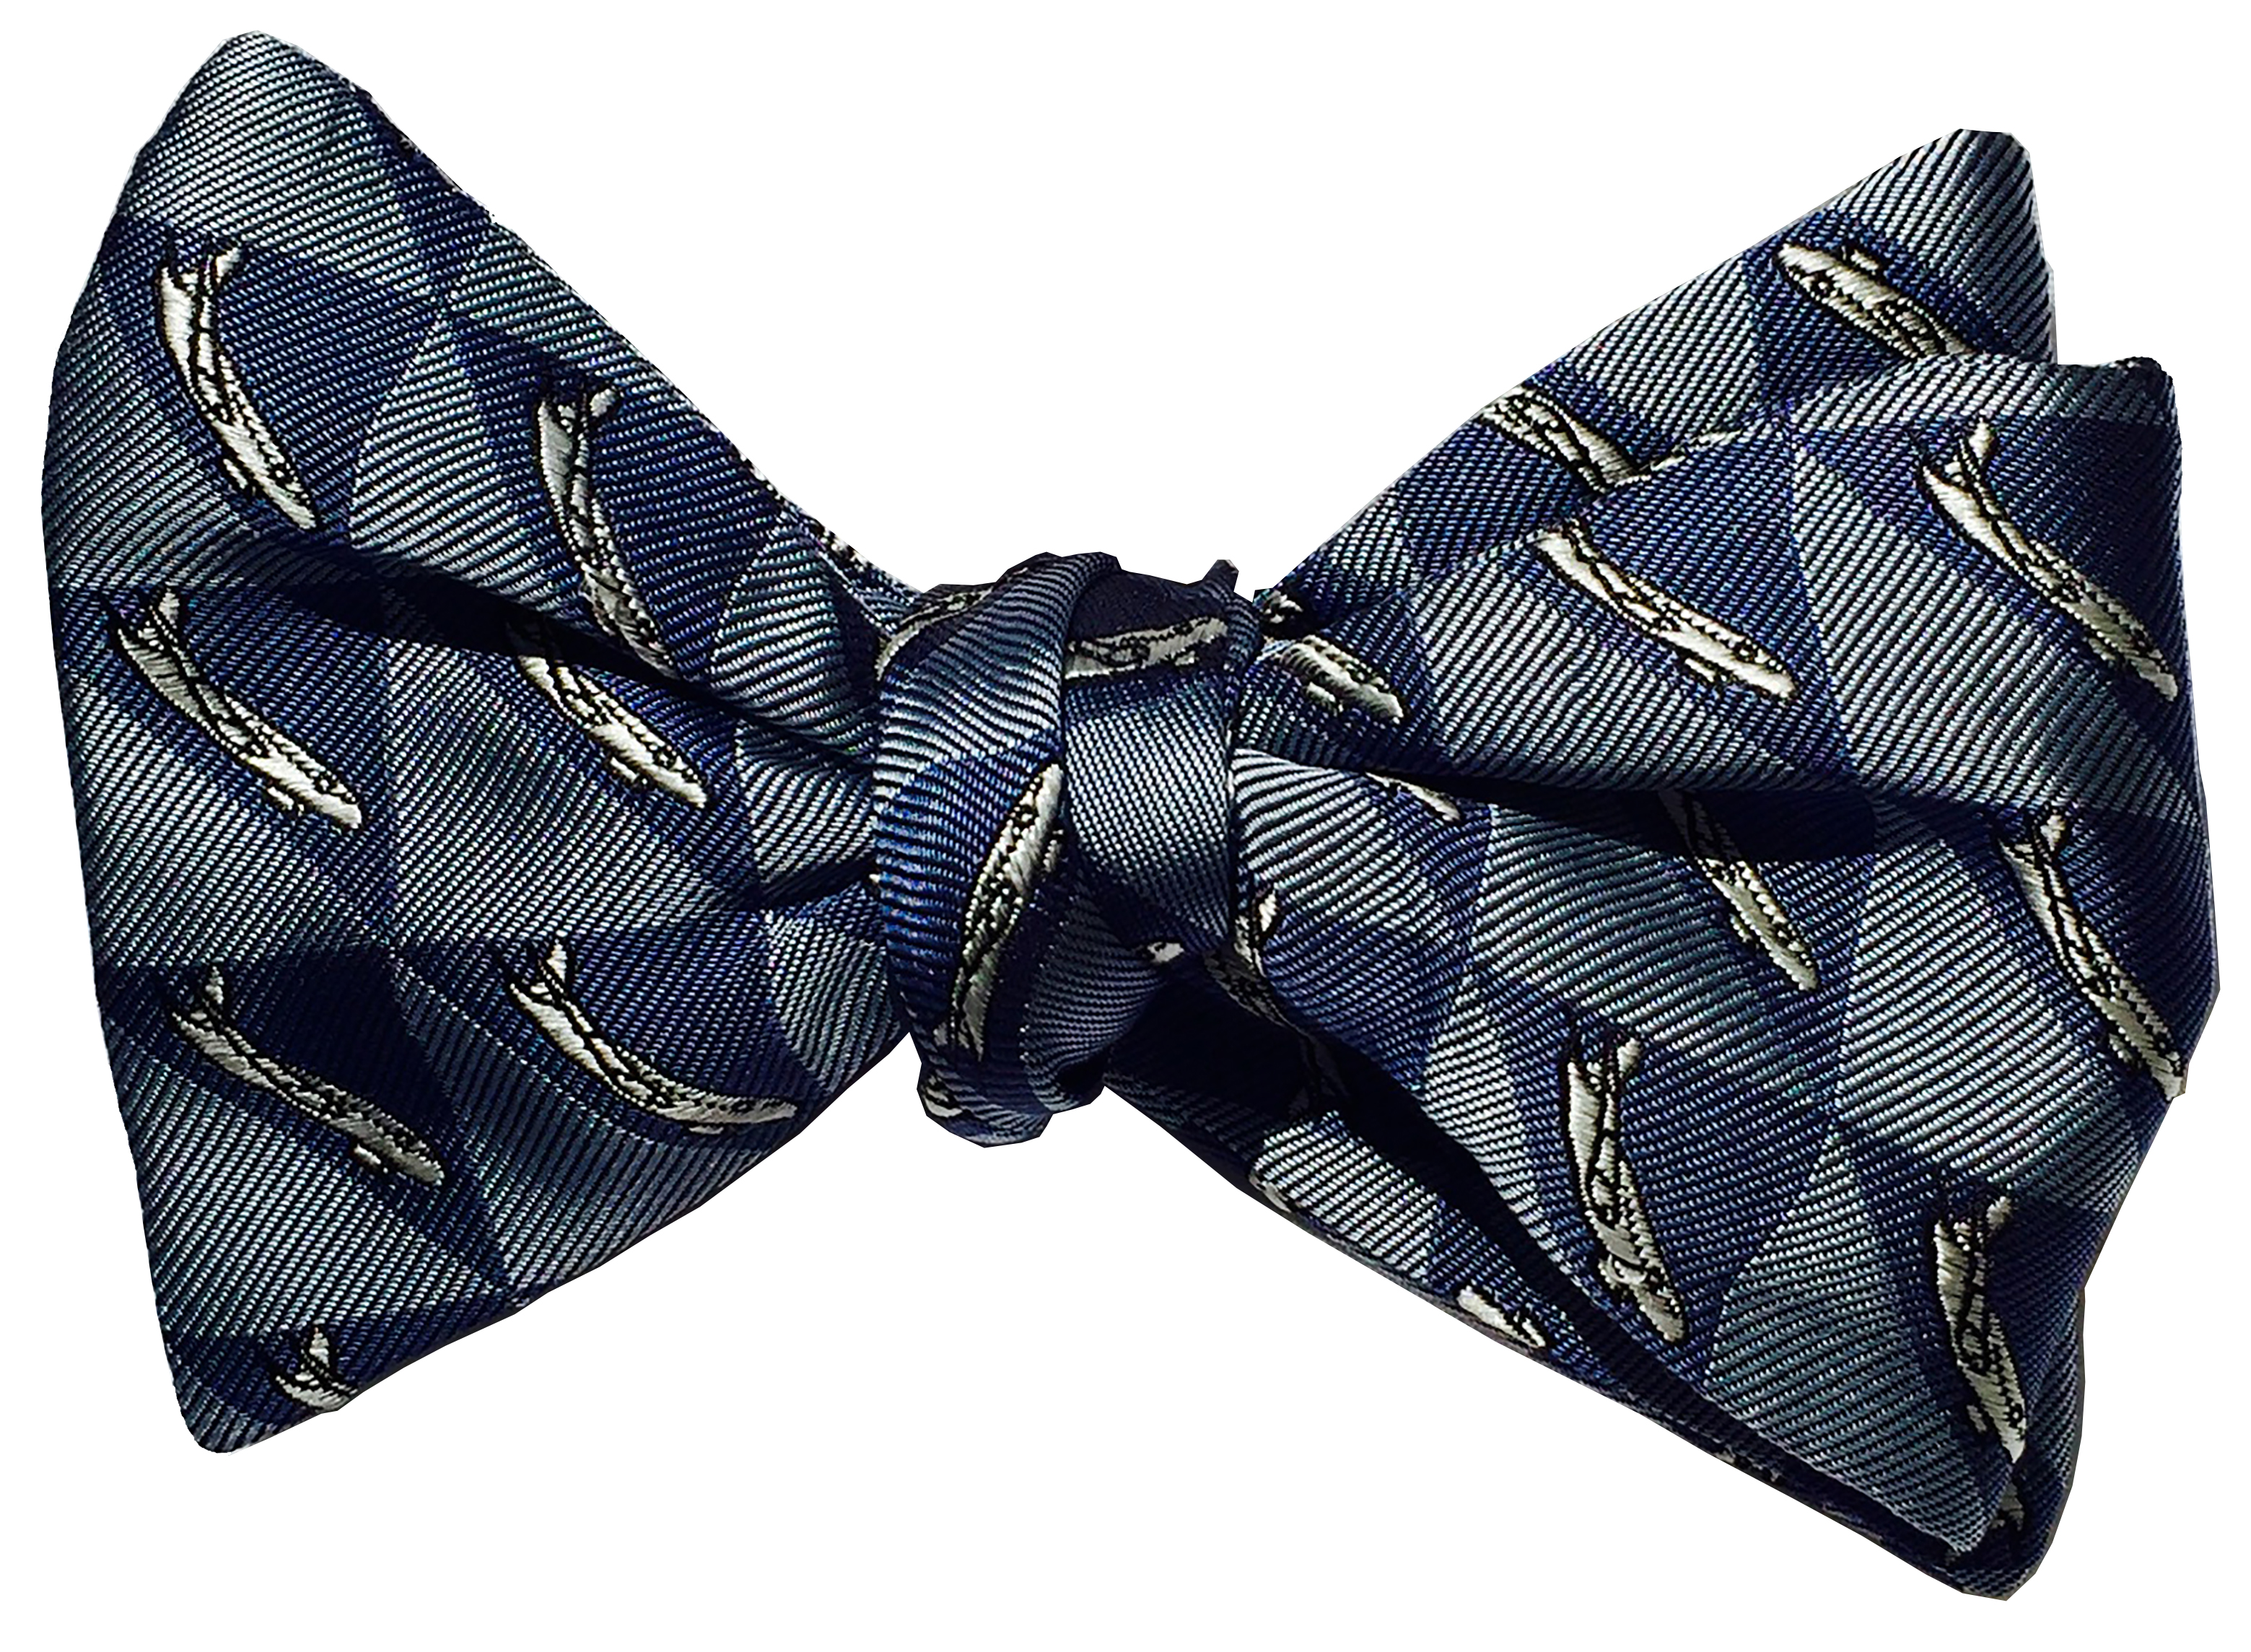 Airbus 320 airliner silk bow tie in grey blue and indigo